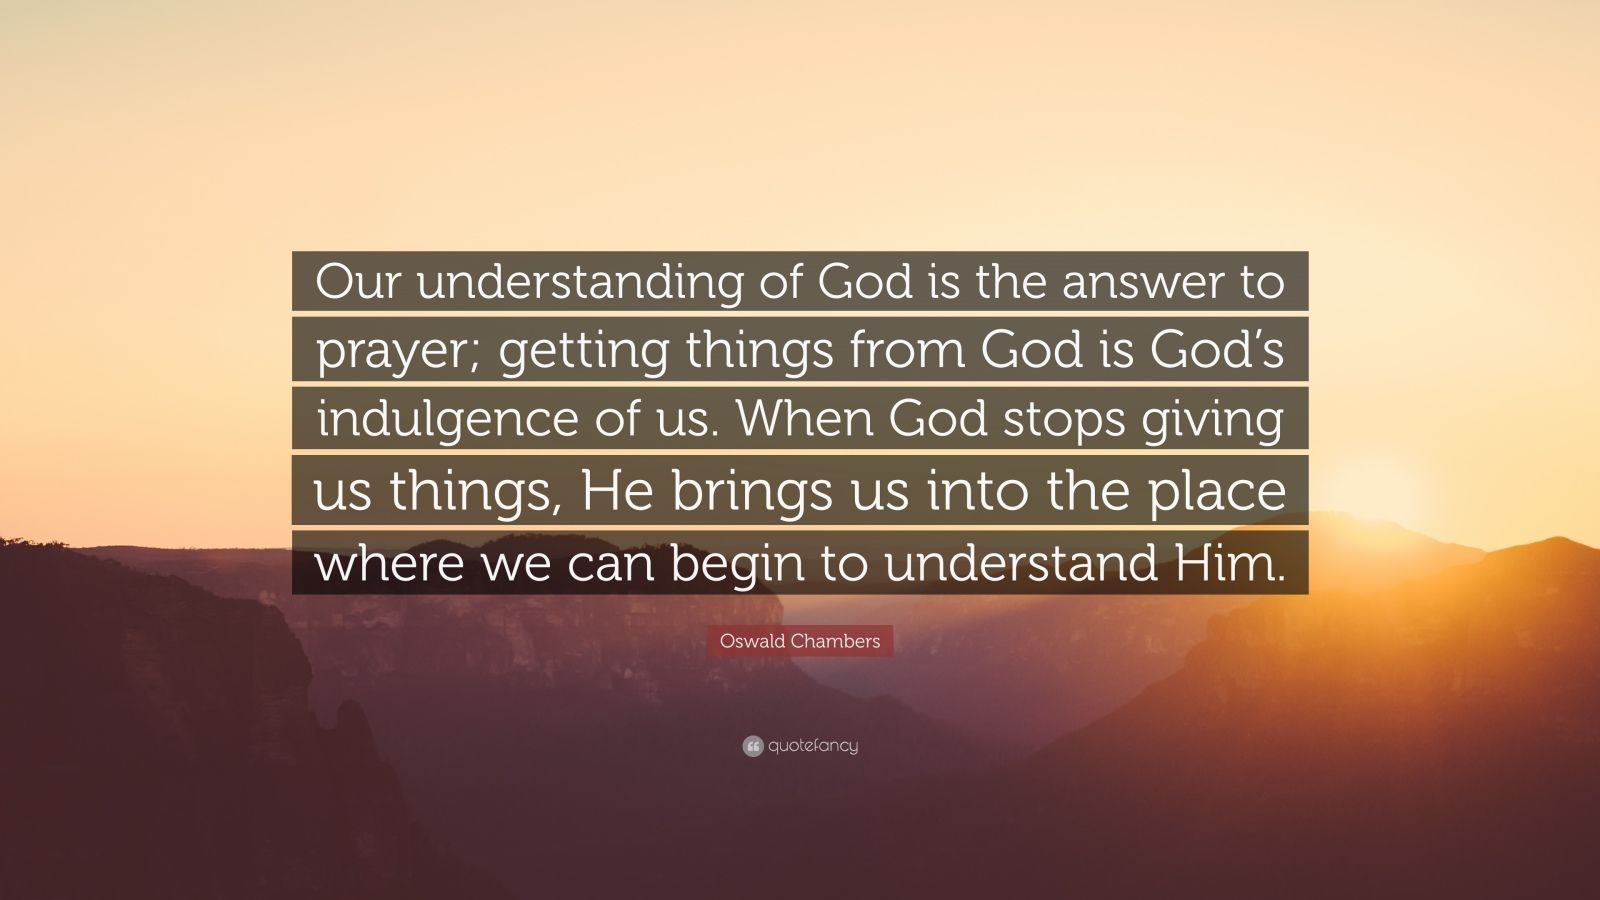 """Oswald Chambers Quote: """"Our understanding of God is the answer to prayer; getting things from God is God's indulgence of us. When God stops giving us things, He brings us into the place where we can begin to understand Him."""""""